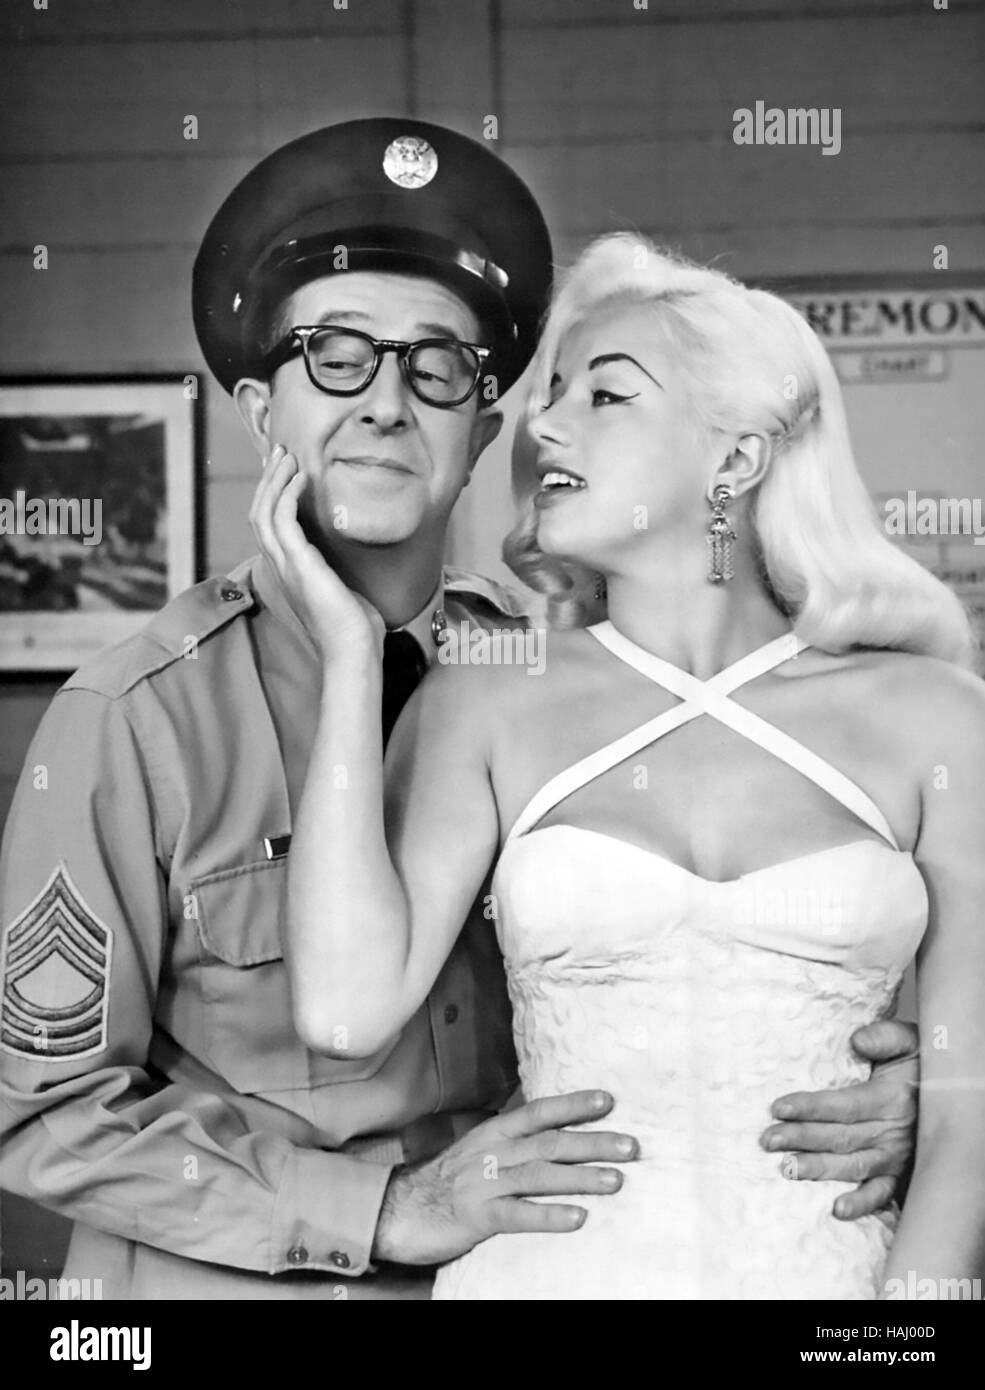 PHIL SILVERS US film and TV actor on his 1958 CBS TV show with Diana Dors - Stock Image